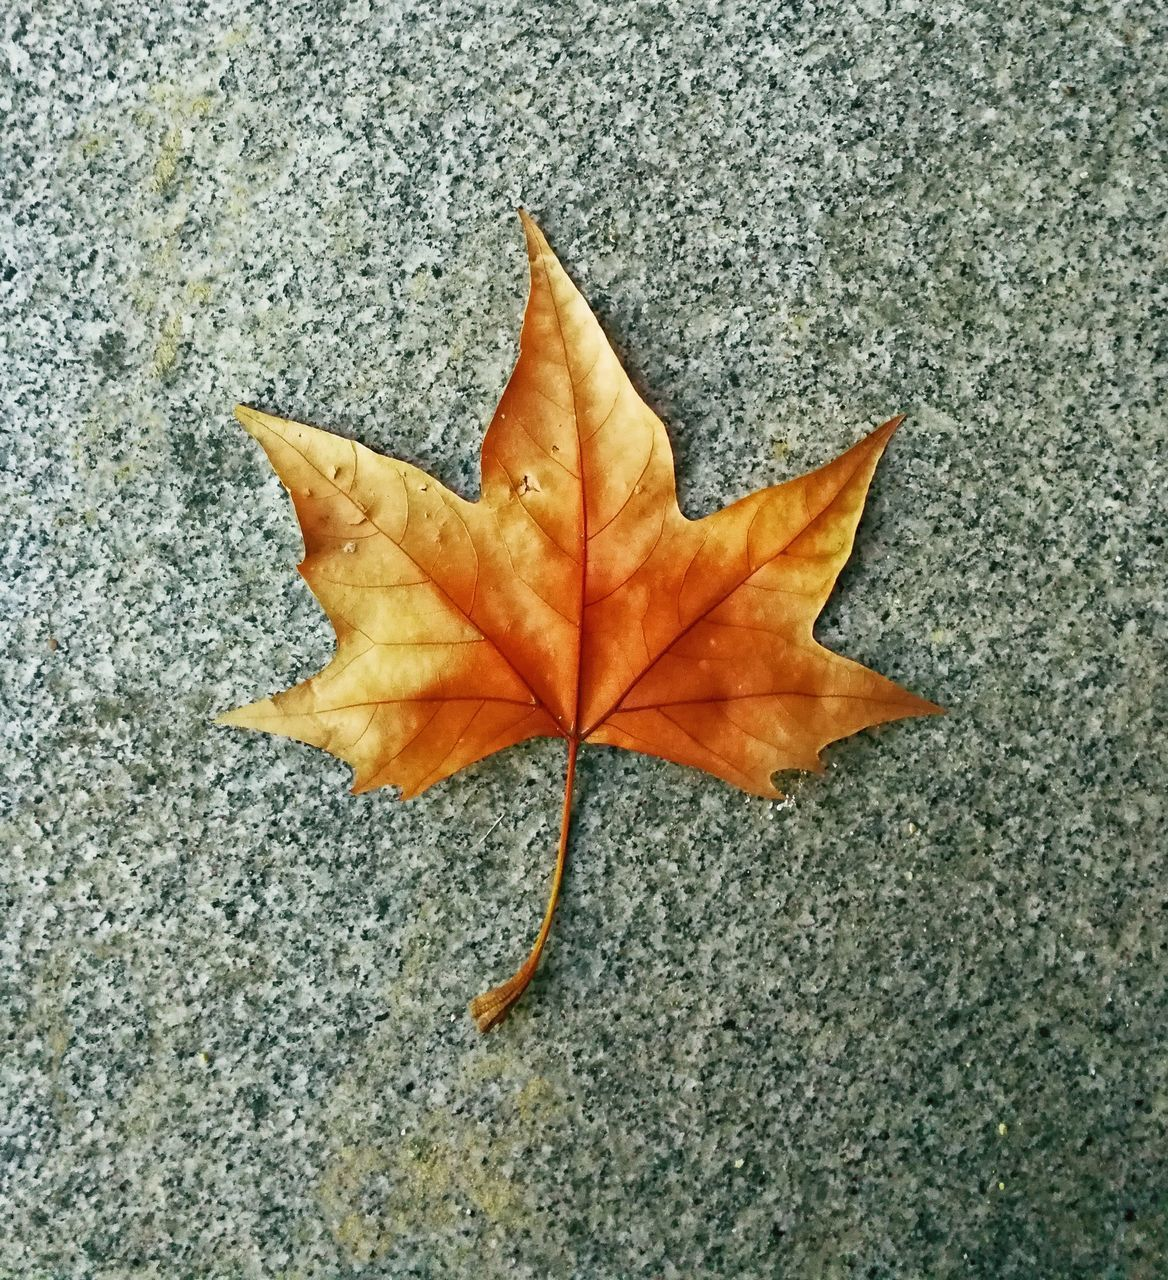 leaf, plant part, close-up, nature, autumn, dry, maple leaf, change, leaf vein, no people, directly above, day, fragility, vulnerability, textured, falling, high angle view, outdoors, plant, beauty in nature, natural condition, leaves